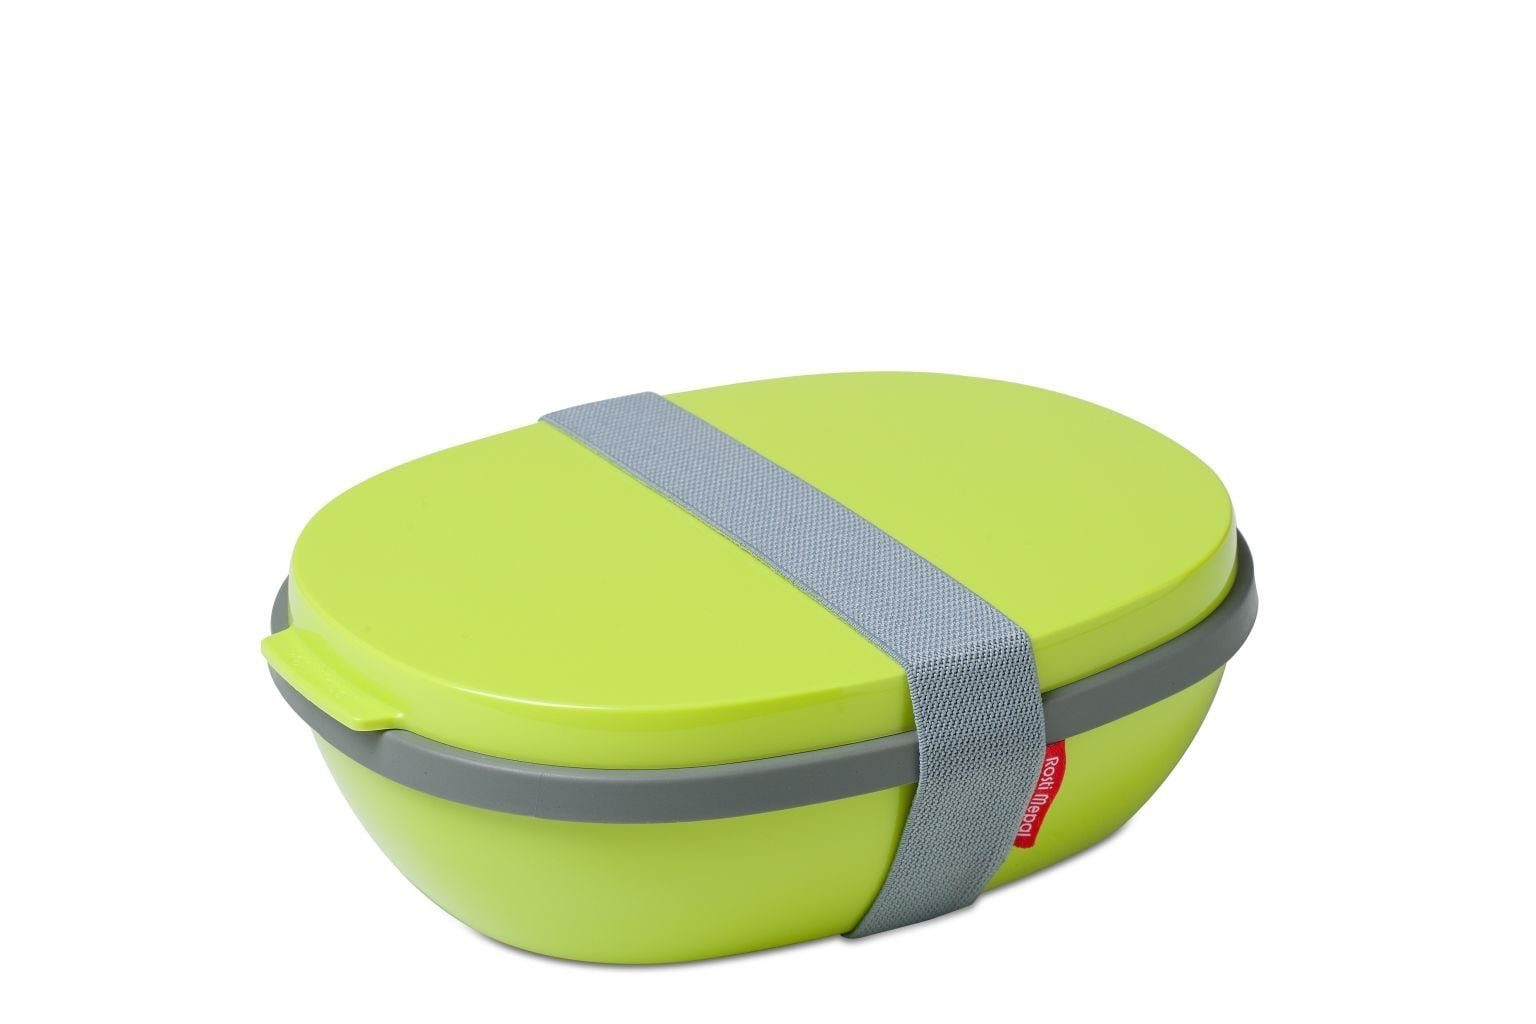 Rosti Mepal Lunchbox To Go Elipse Lime